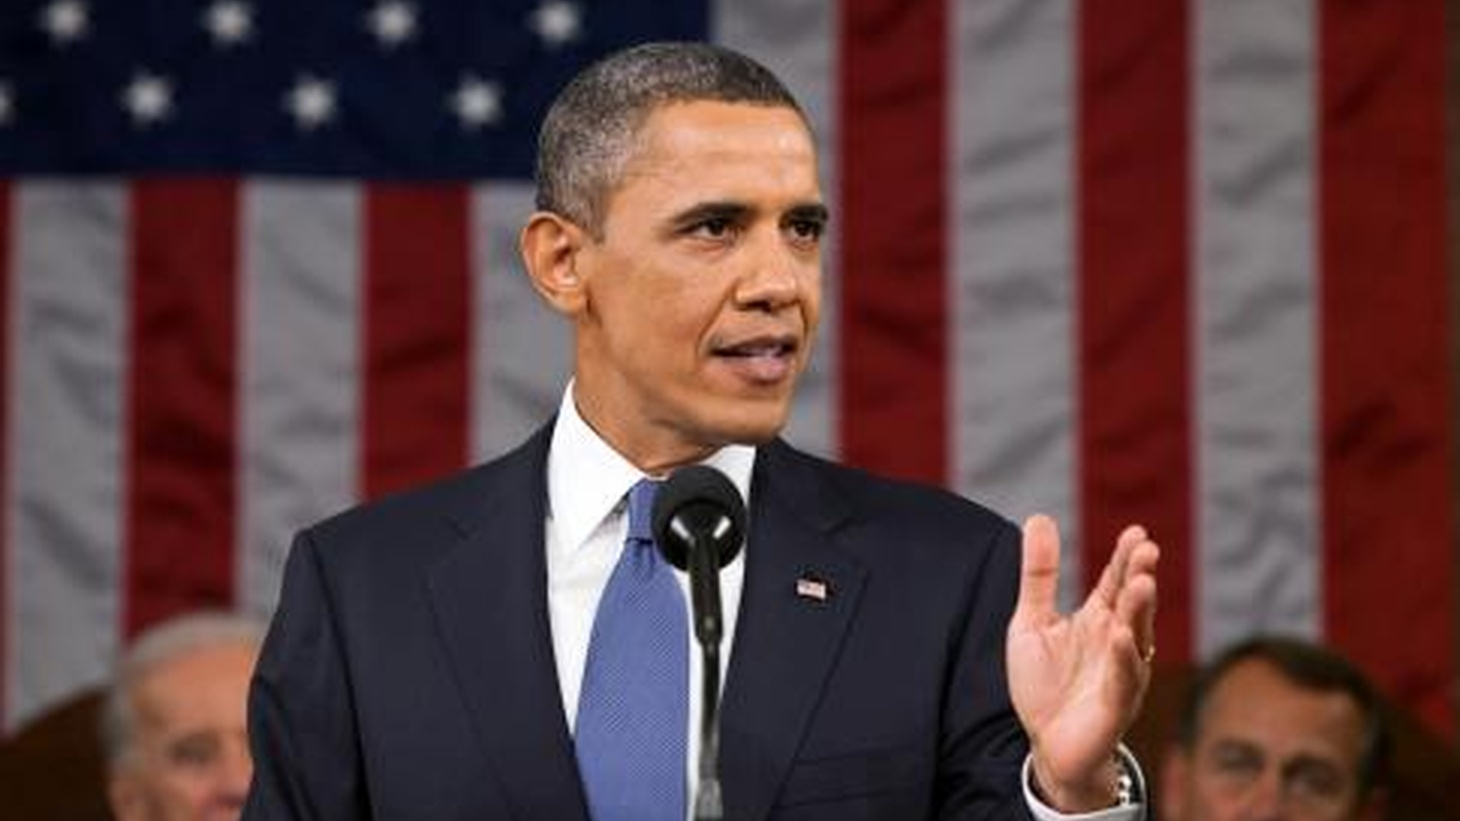 KCRW will carry President Obama's State of the Union address and the Republican response live on Tuesday, February 12, at 6pm PDT